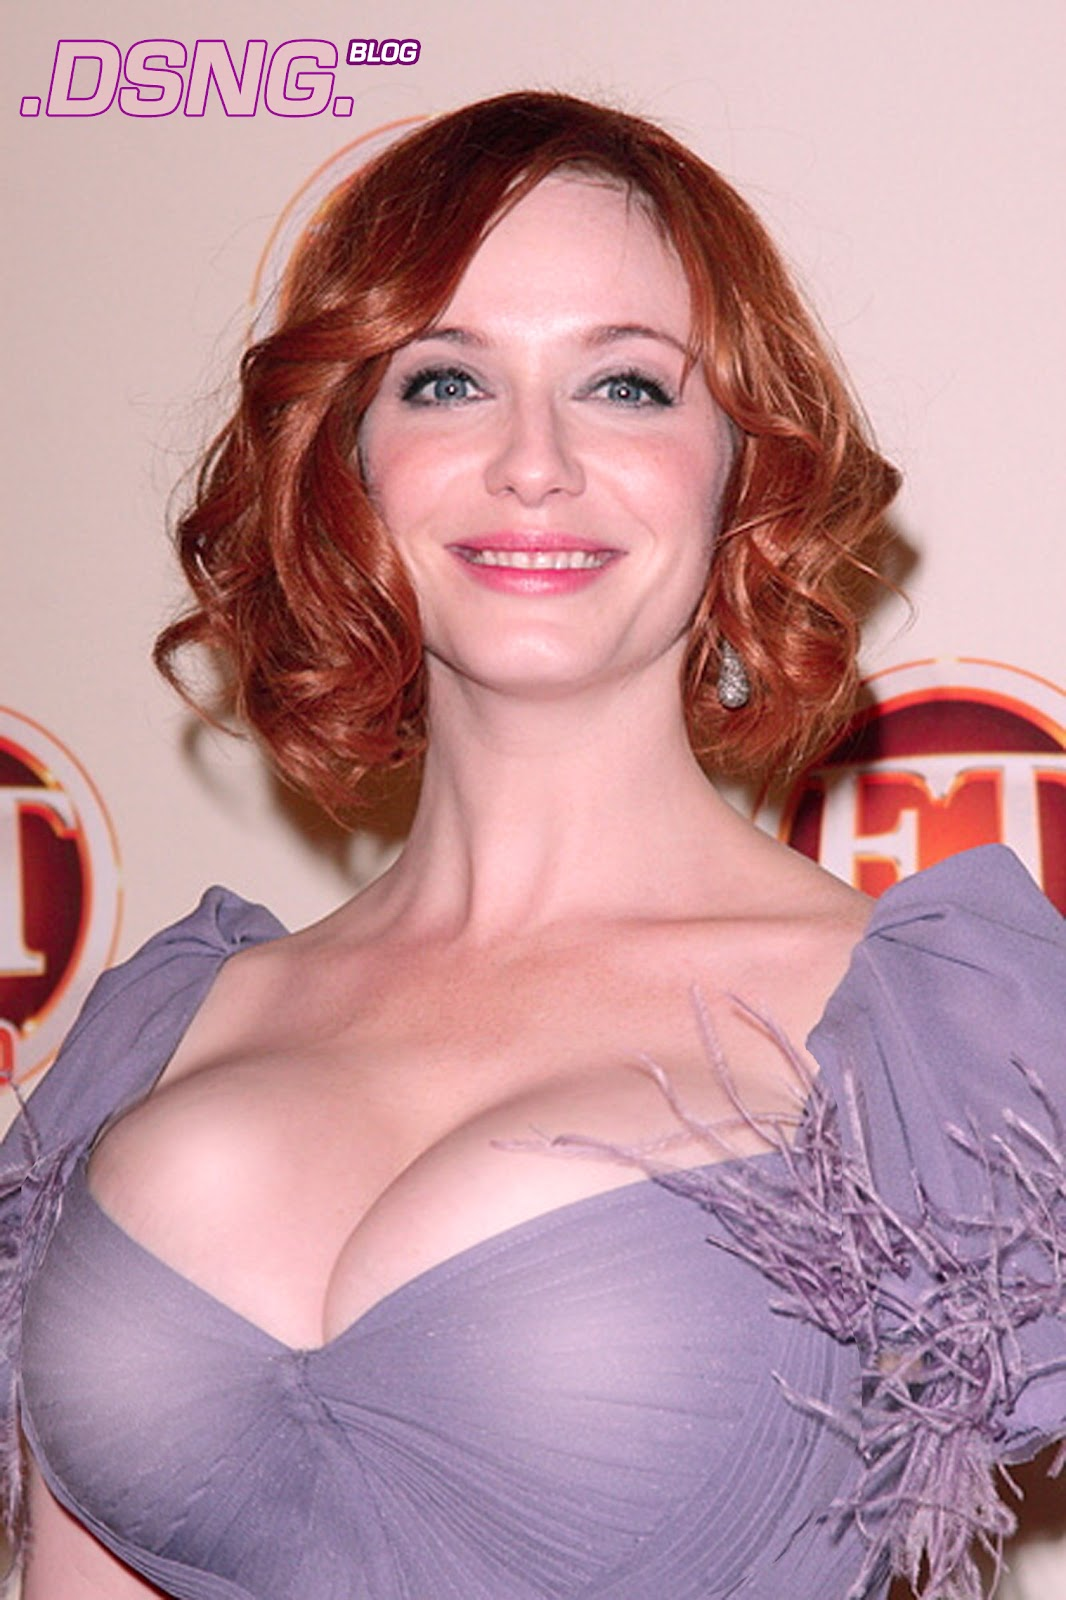 christina+hendricks+hollywood+actress+bi